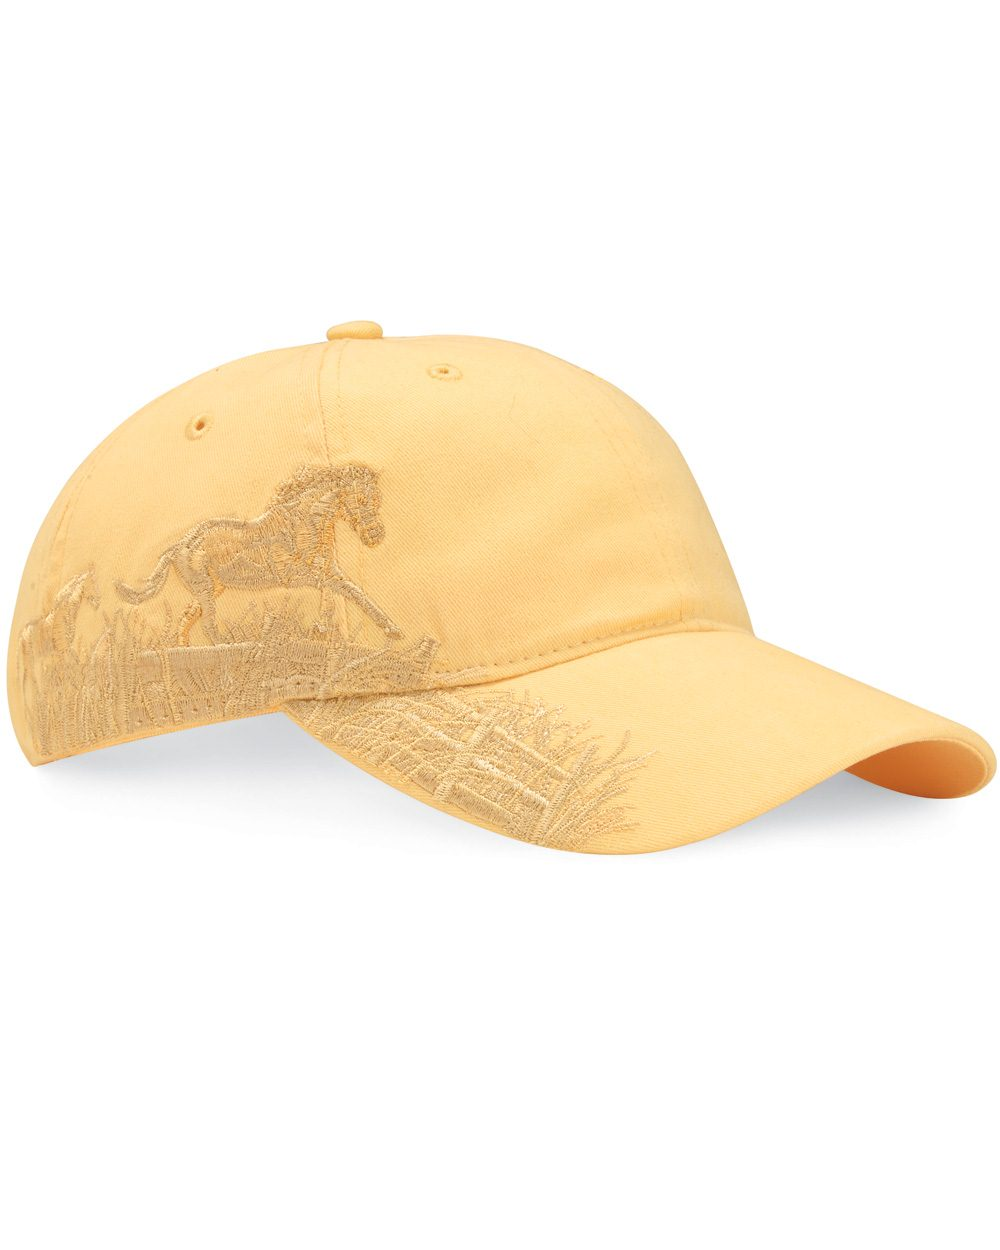 DRI DUCK Wildlife Series Meadow Horse Cap - 3267